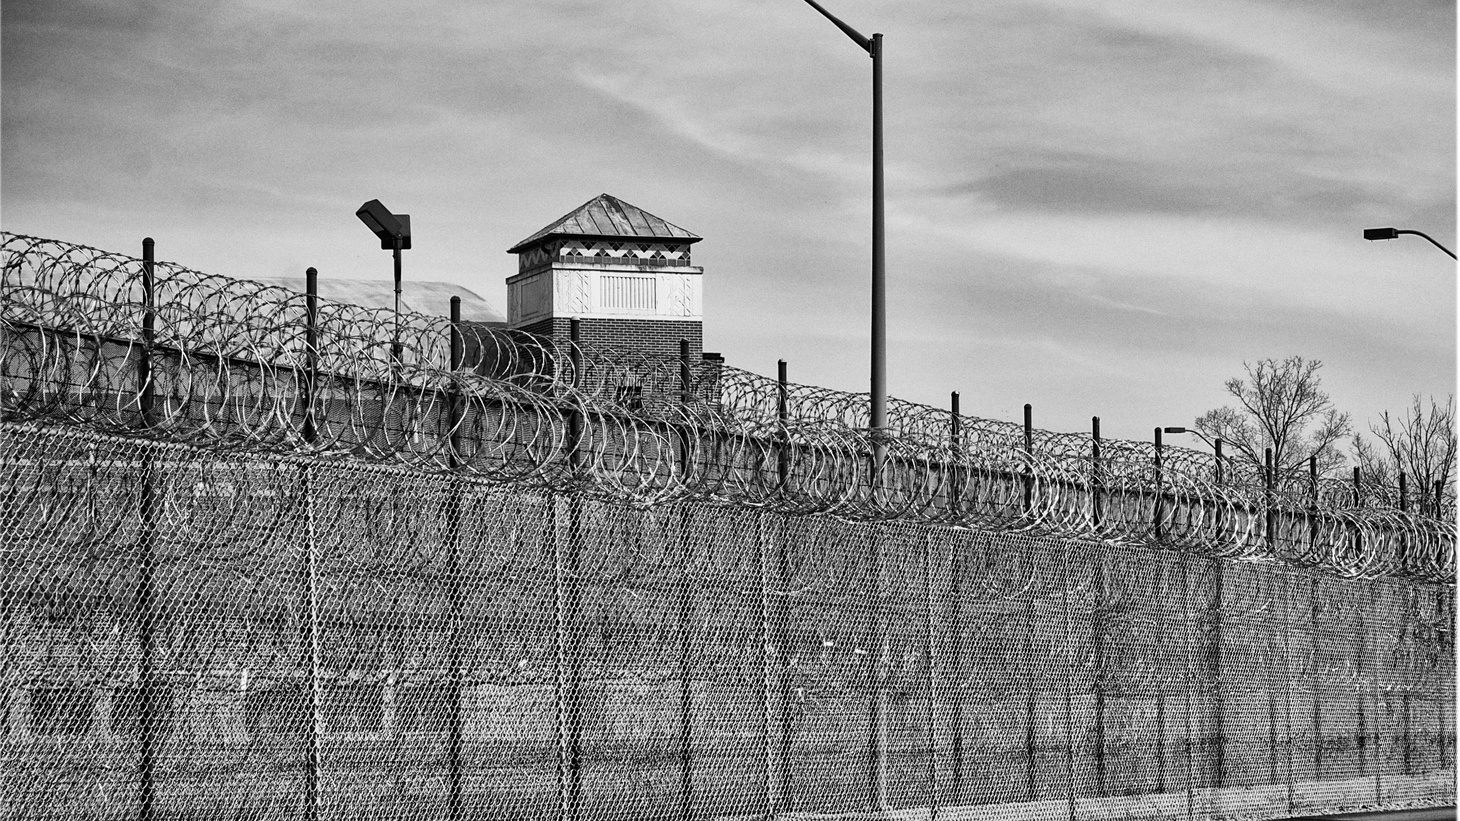 A record 125 prisoners were released last year in Texas, New York and other states after serving long terms for crimes they did not commit. The public-radio podcast Serial focused attention on cases being re-investigated because of possible wrongful convictions. Now there's a national movement for exonerations.